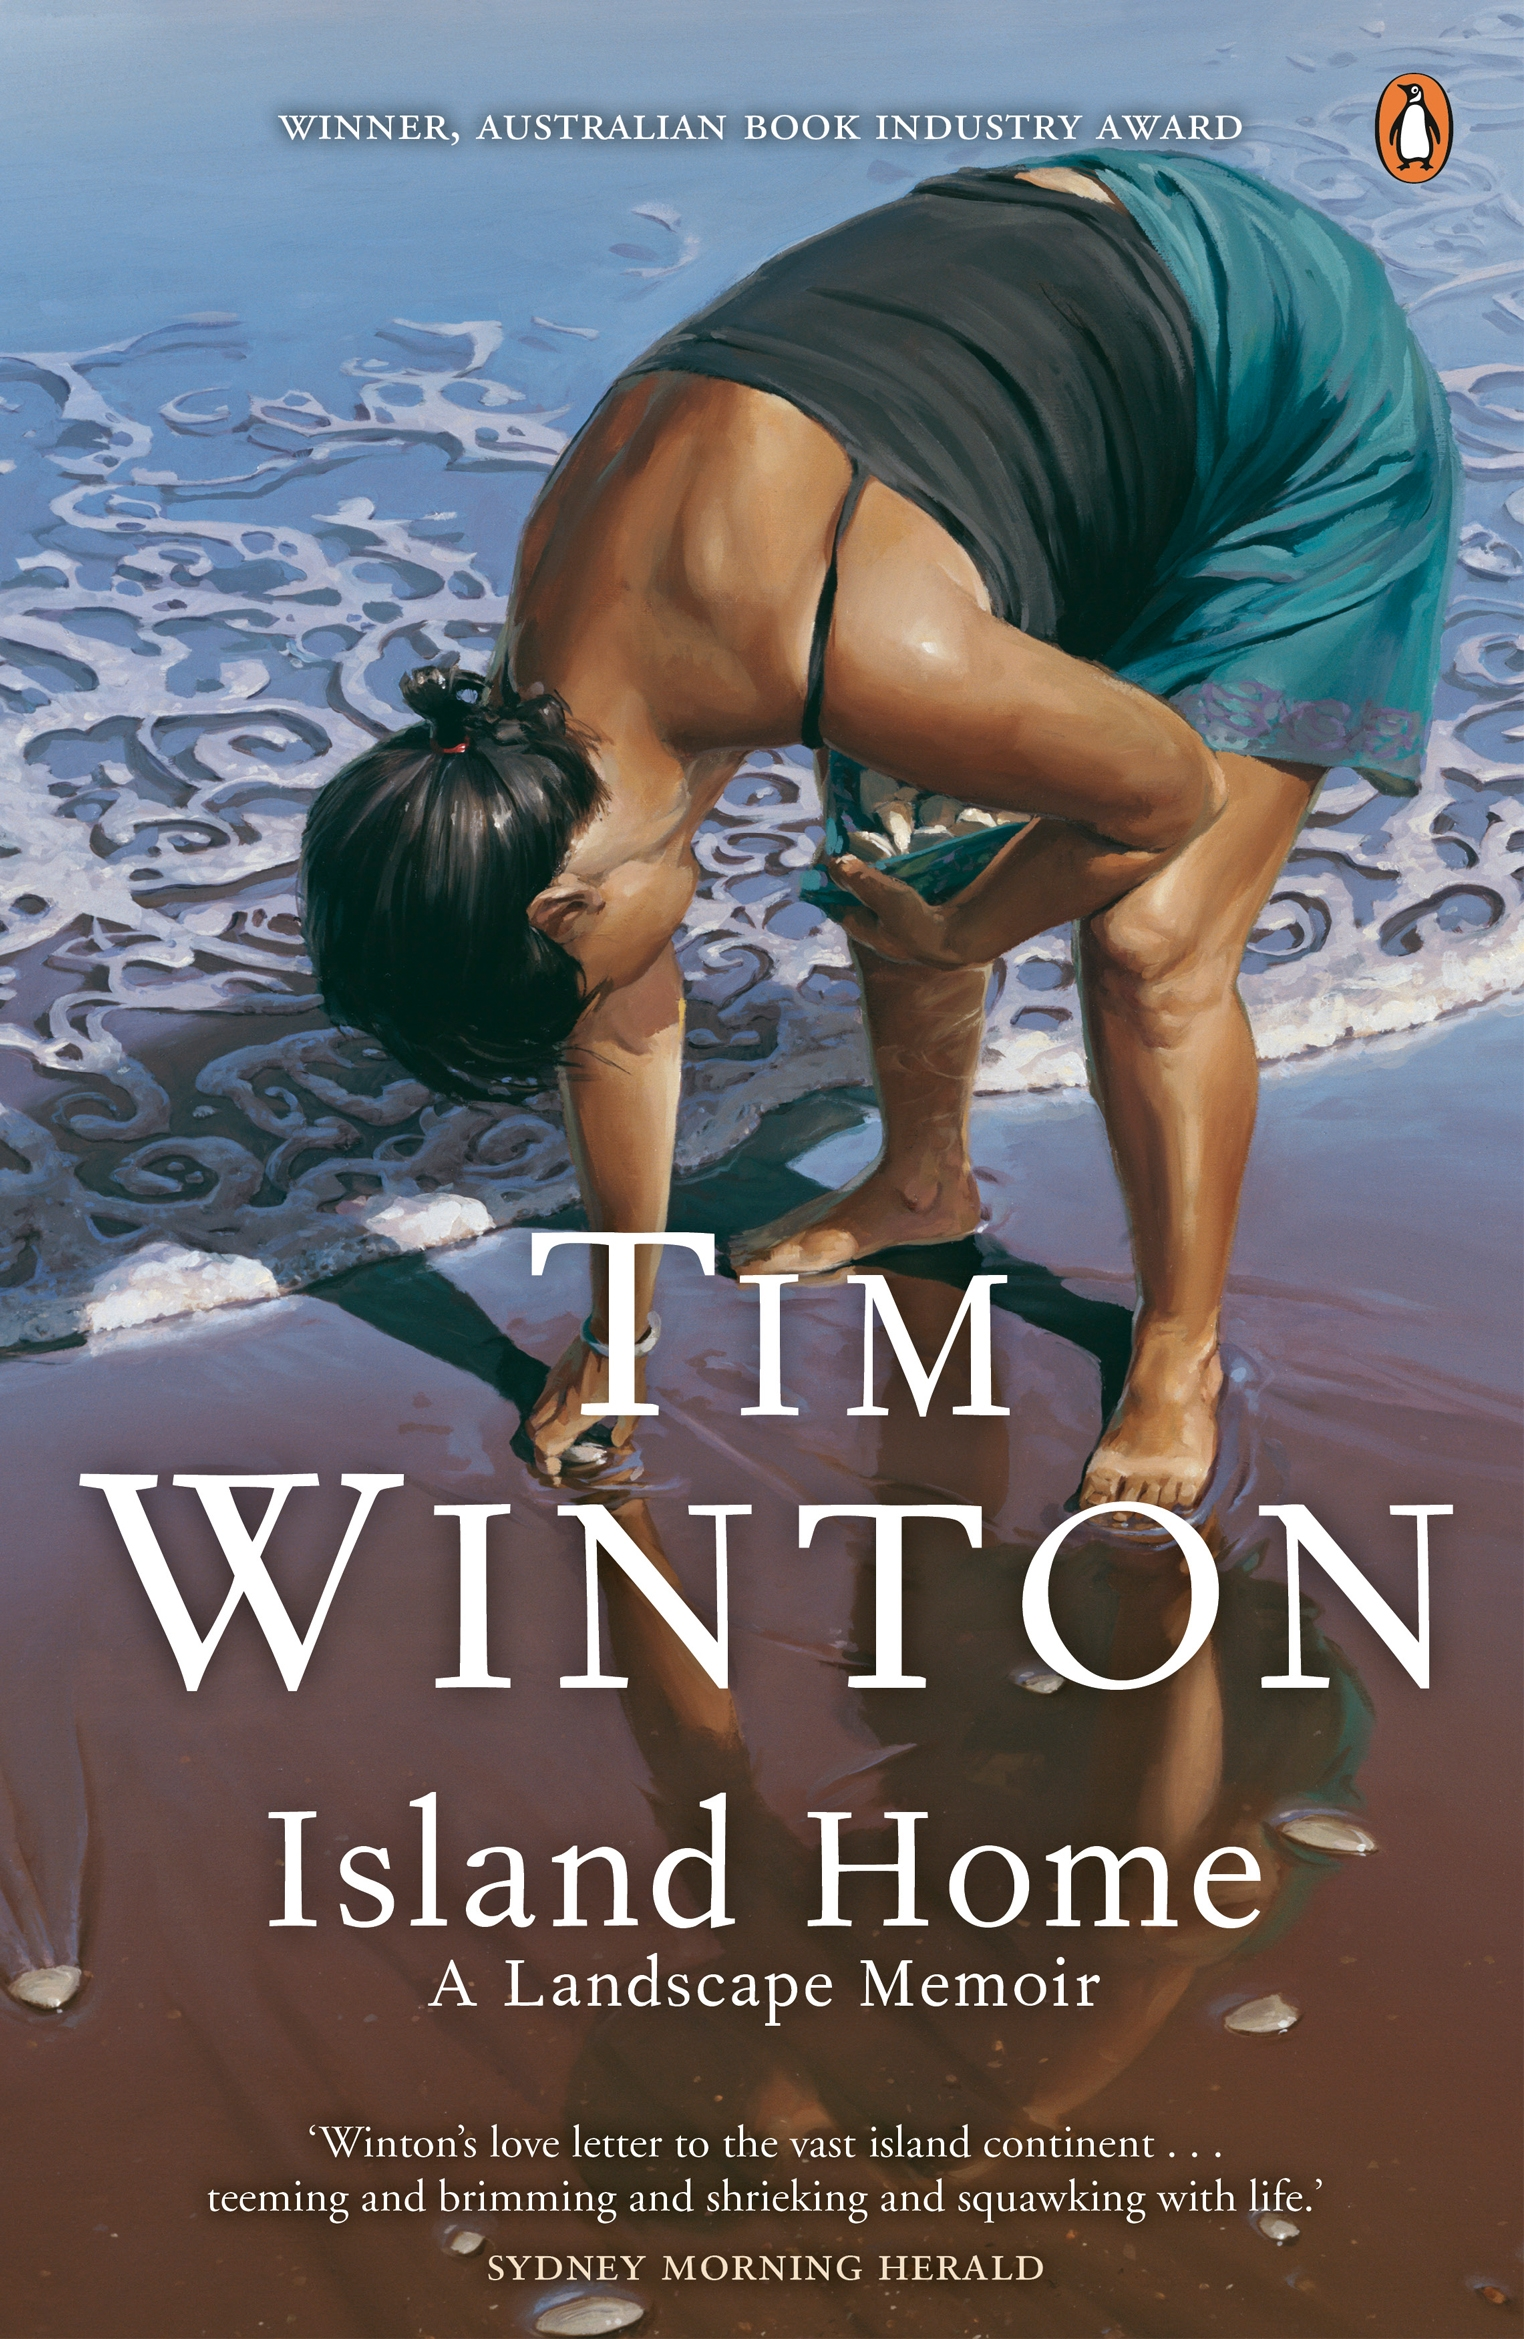 Island Home by Tim Winton, ISBN: 9780143574095